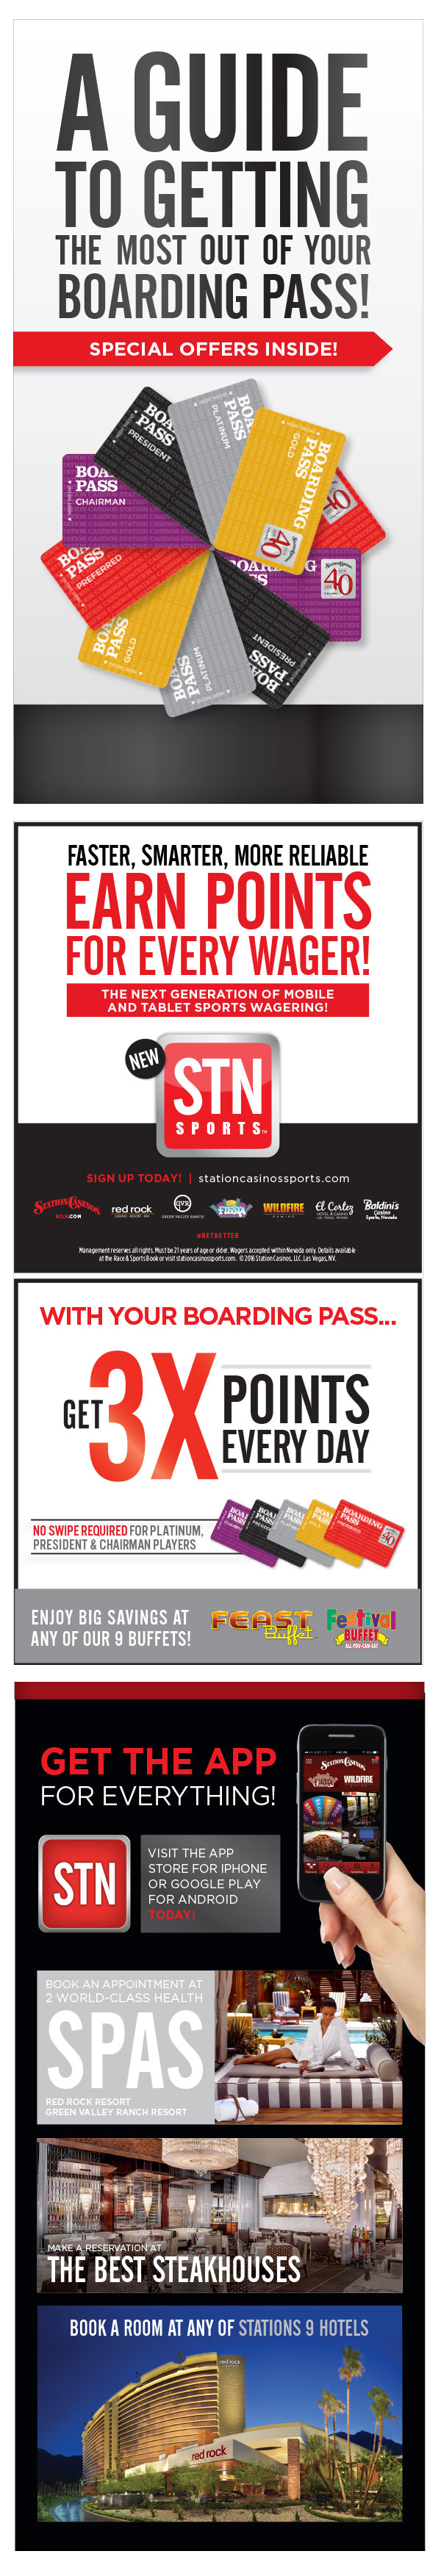 Station Casinos Boarding Pass Guide